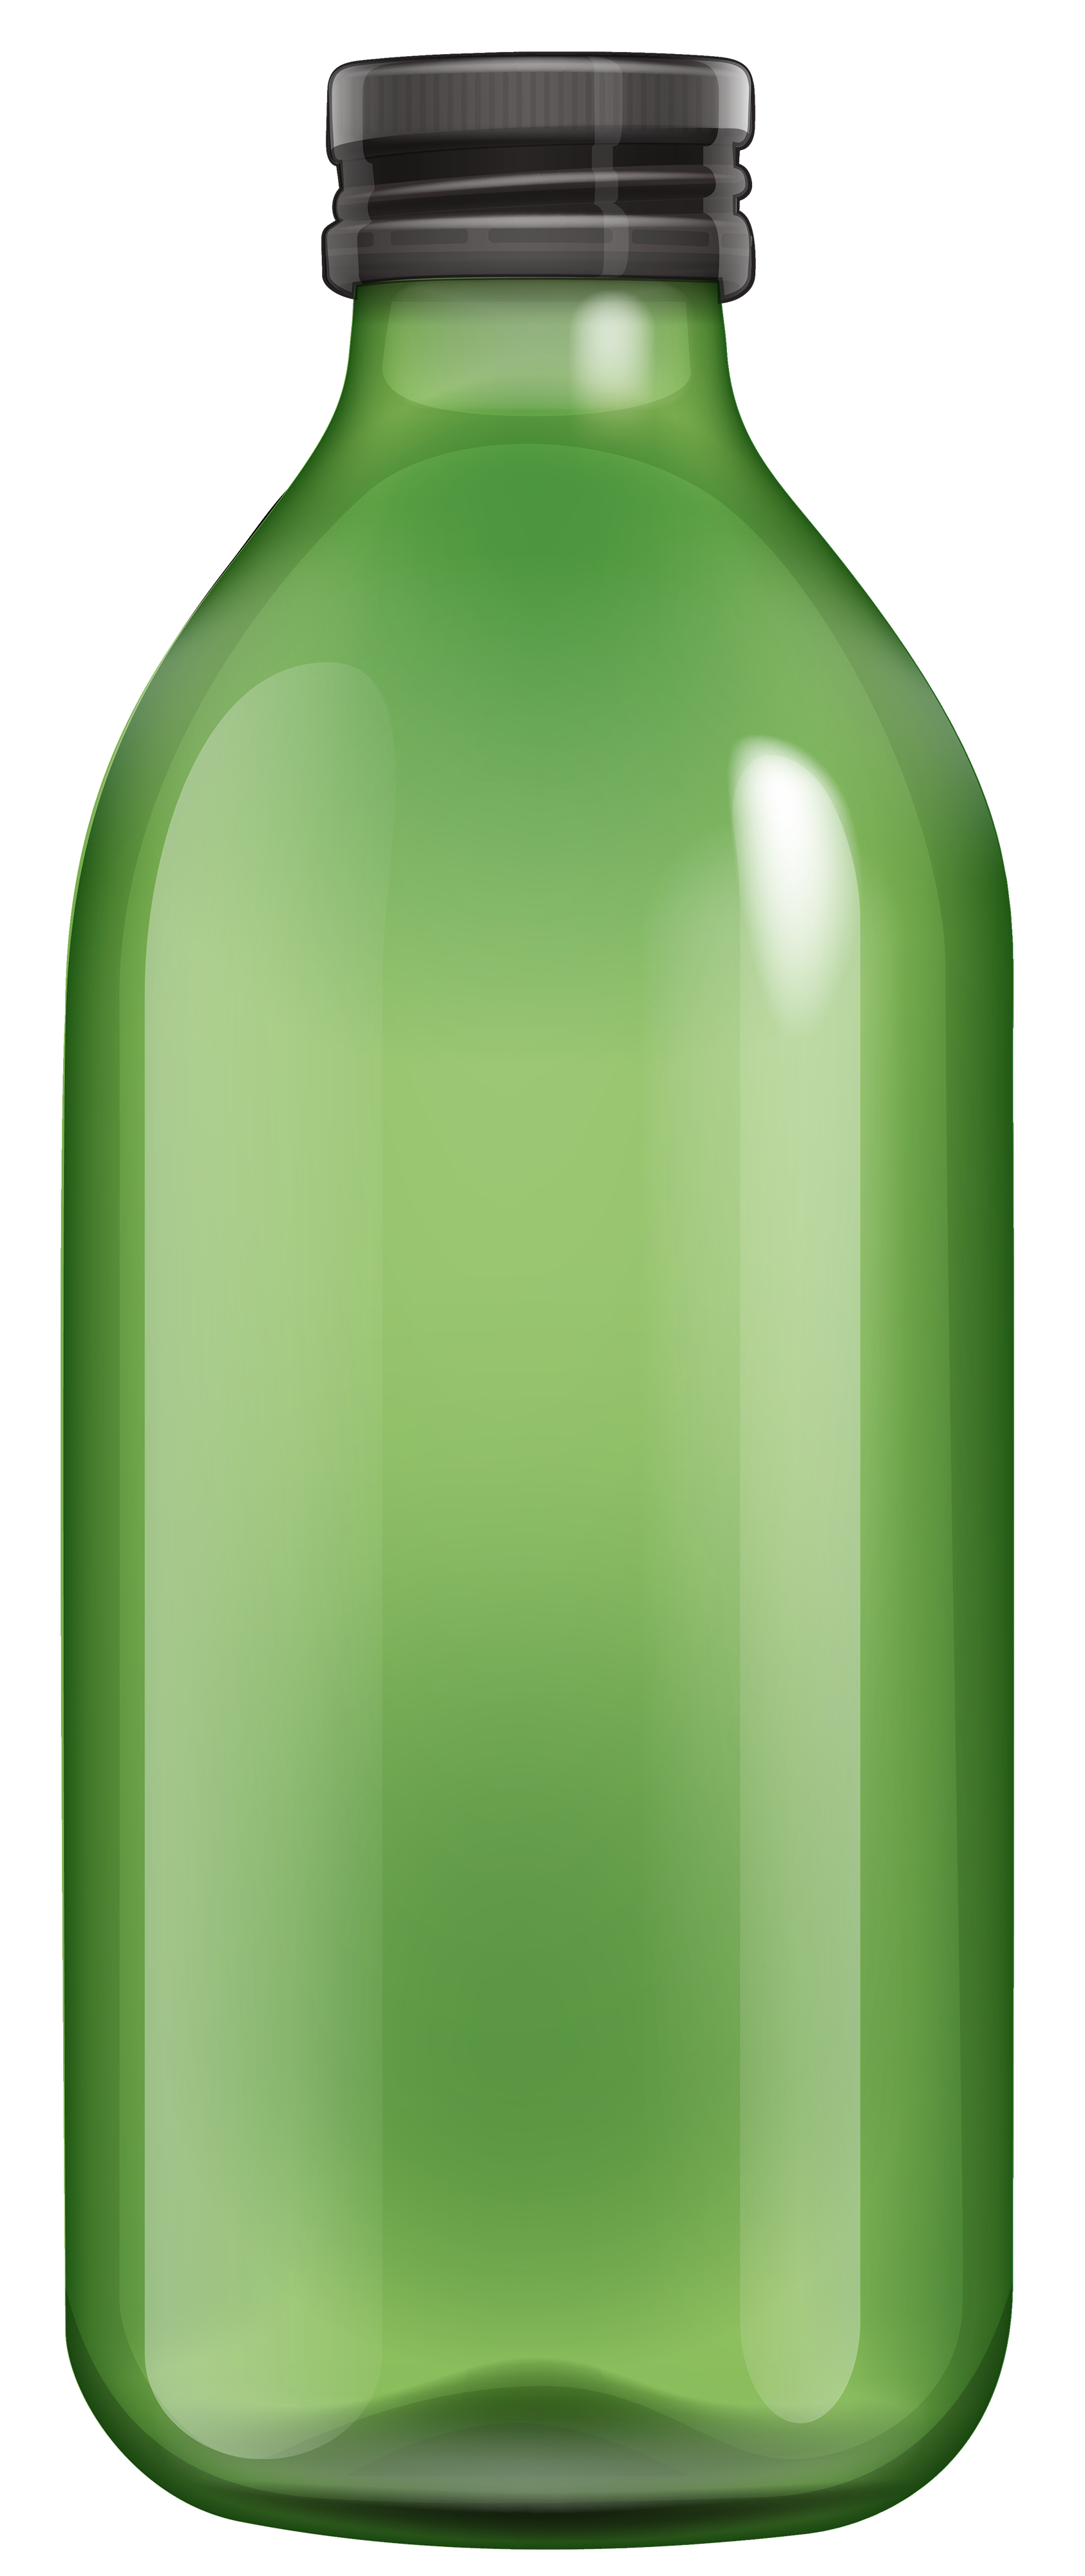 Clipart church wine. Green bottle png best